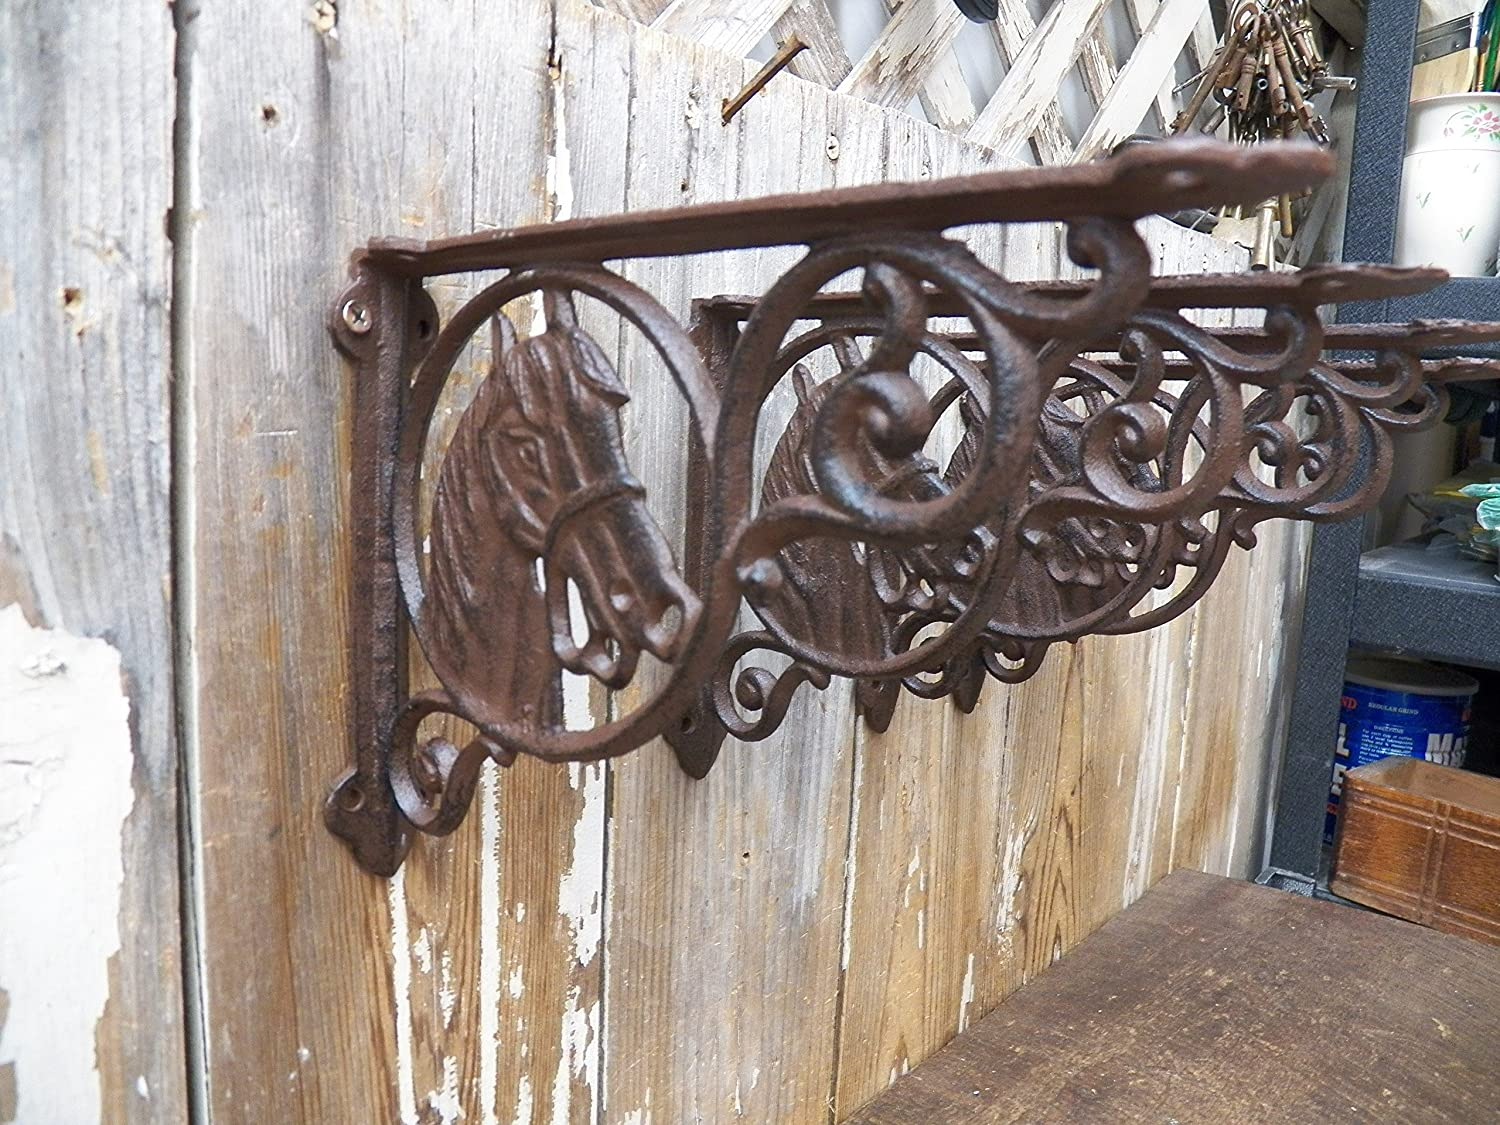 HOME GARDEN FENCE POST HANGING CAST IRON VINTAGE REPRO 1 PLEASE CLOSE THE GATE